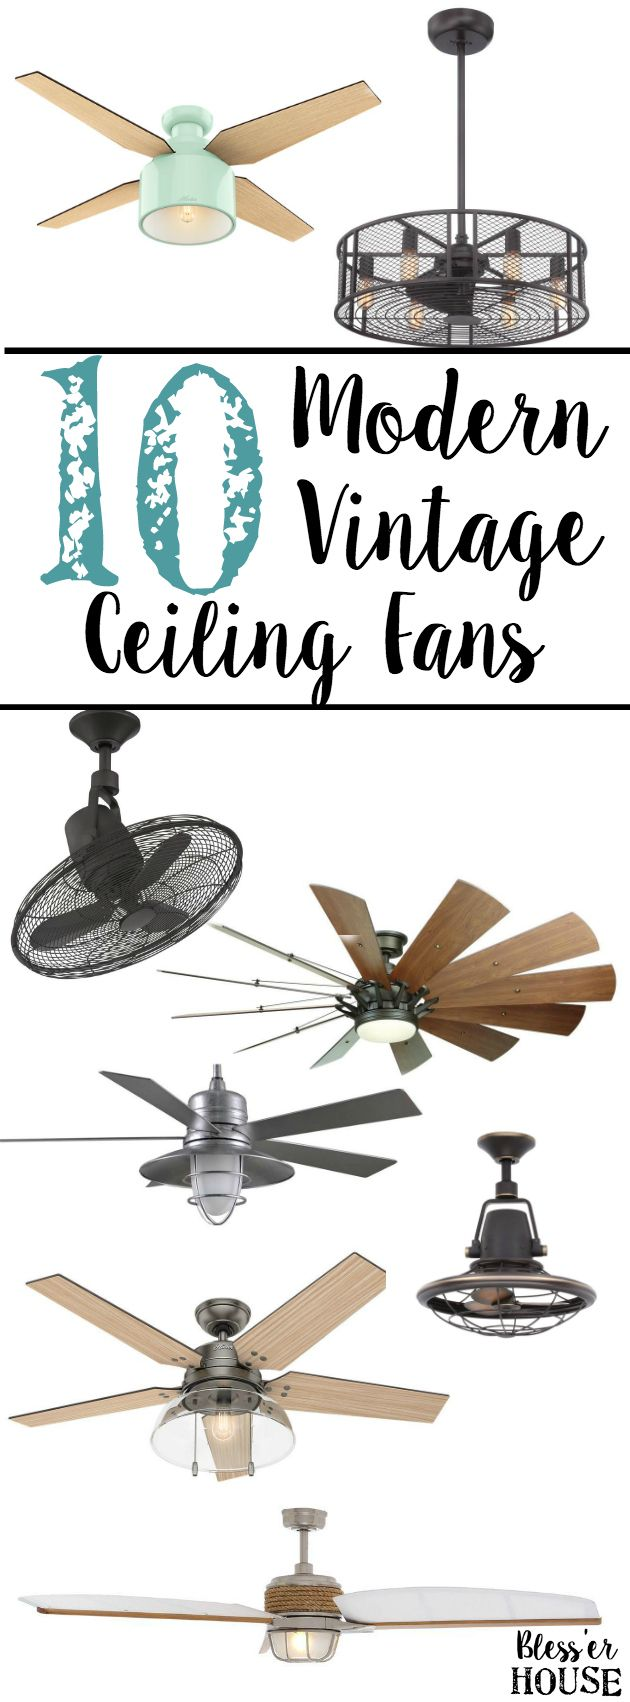 10 Modern Vintage Ceiling Fans | blesserhouse.com - A shopping guide for rustic / industrial / modern / vintage ceiling fans that won't break the bank. popular pin